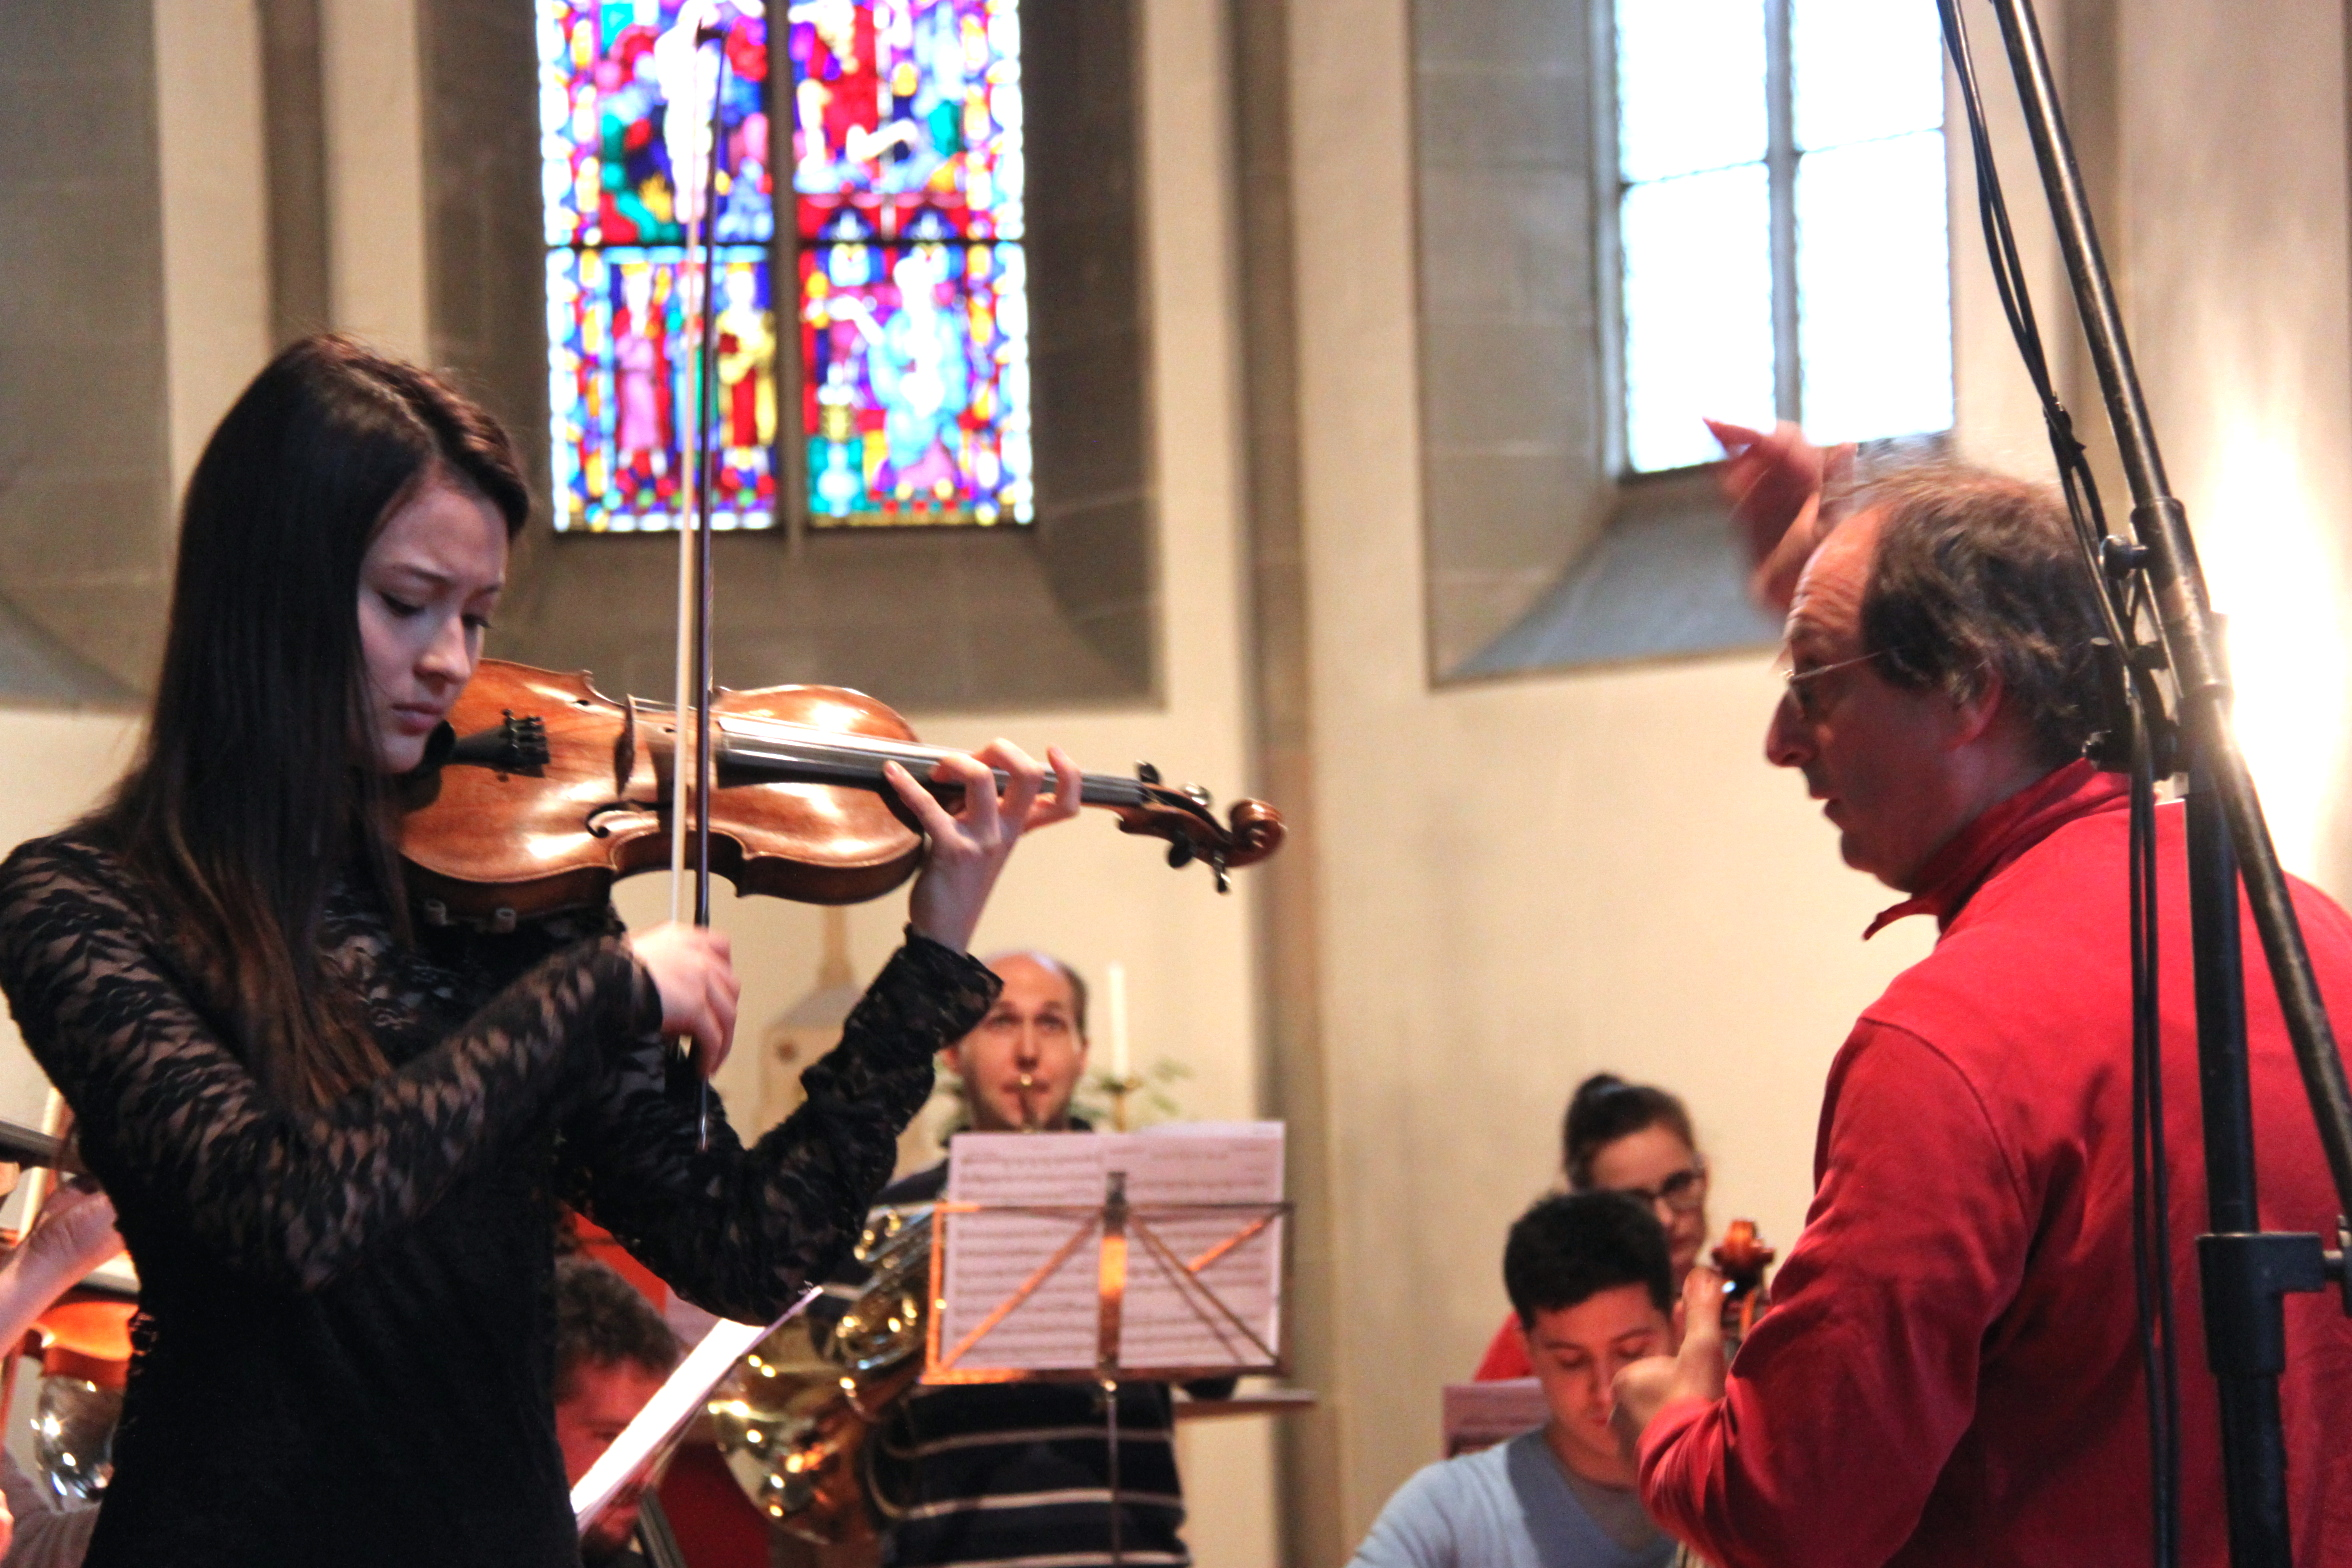 During rehearsal of the Mozart Violin Concerto